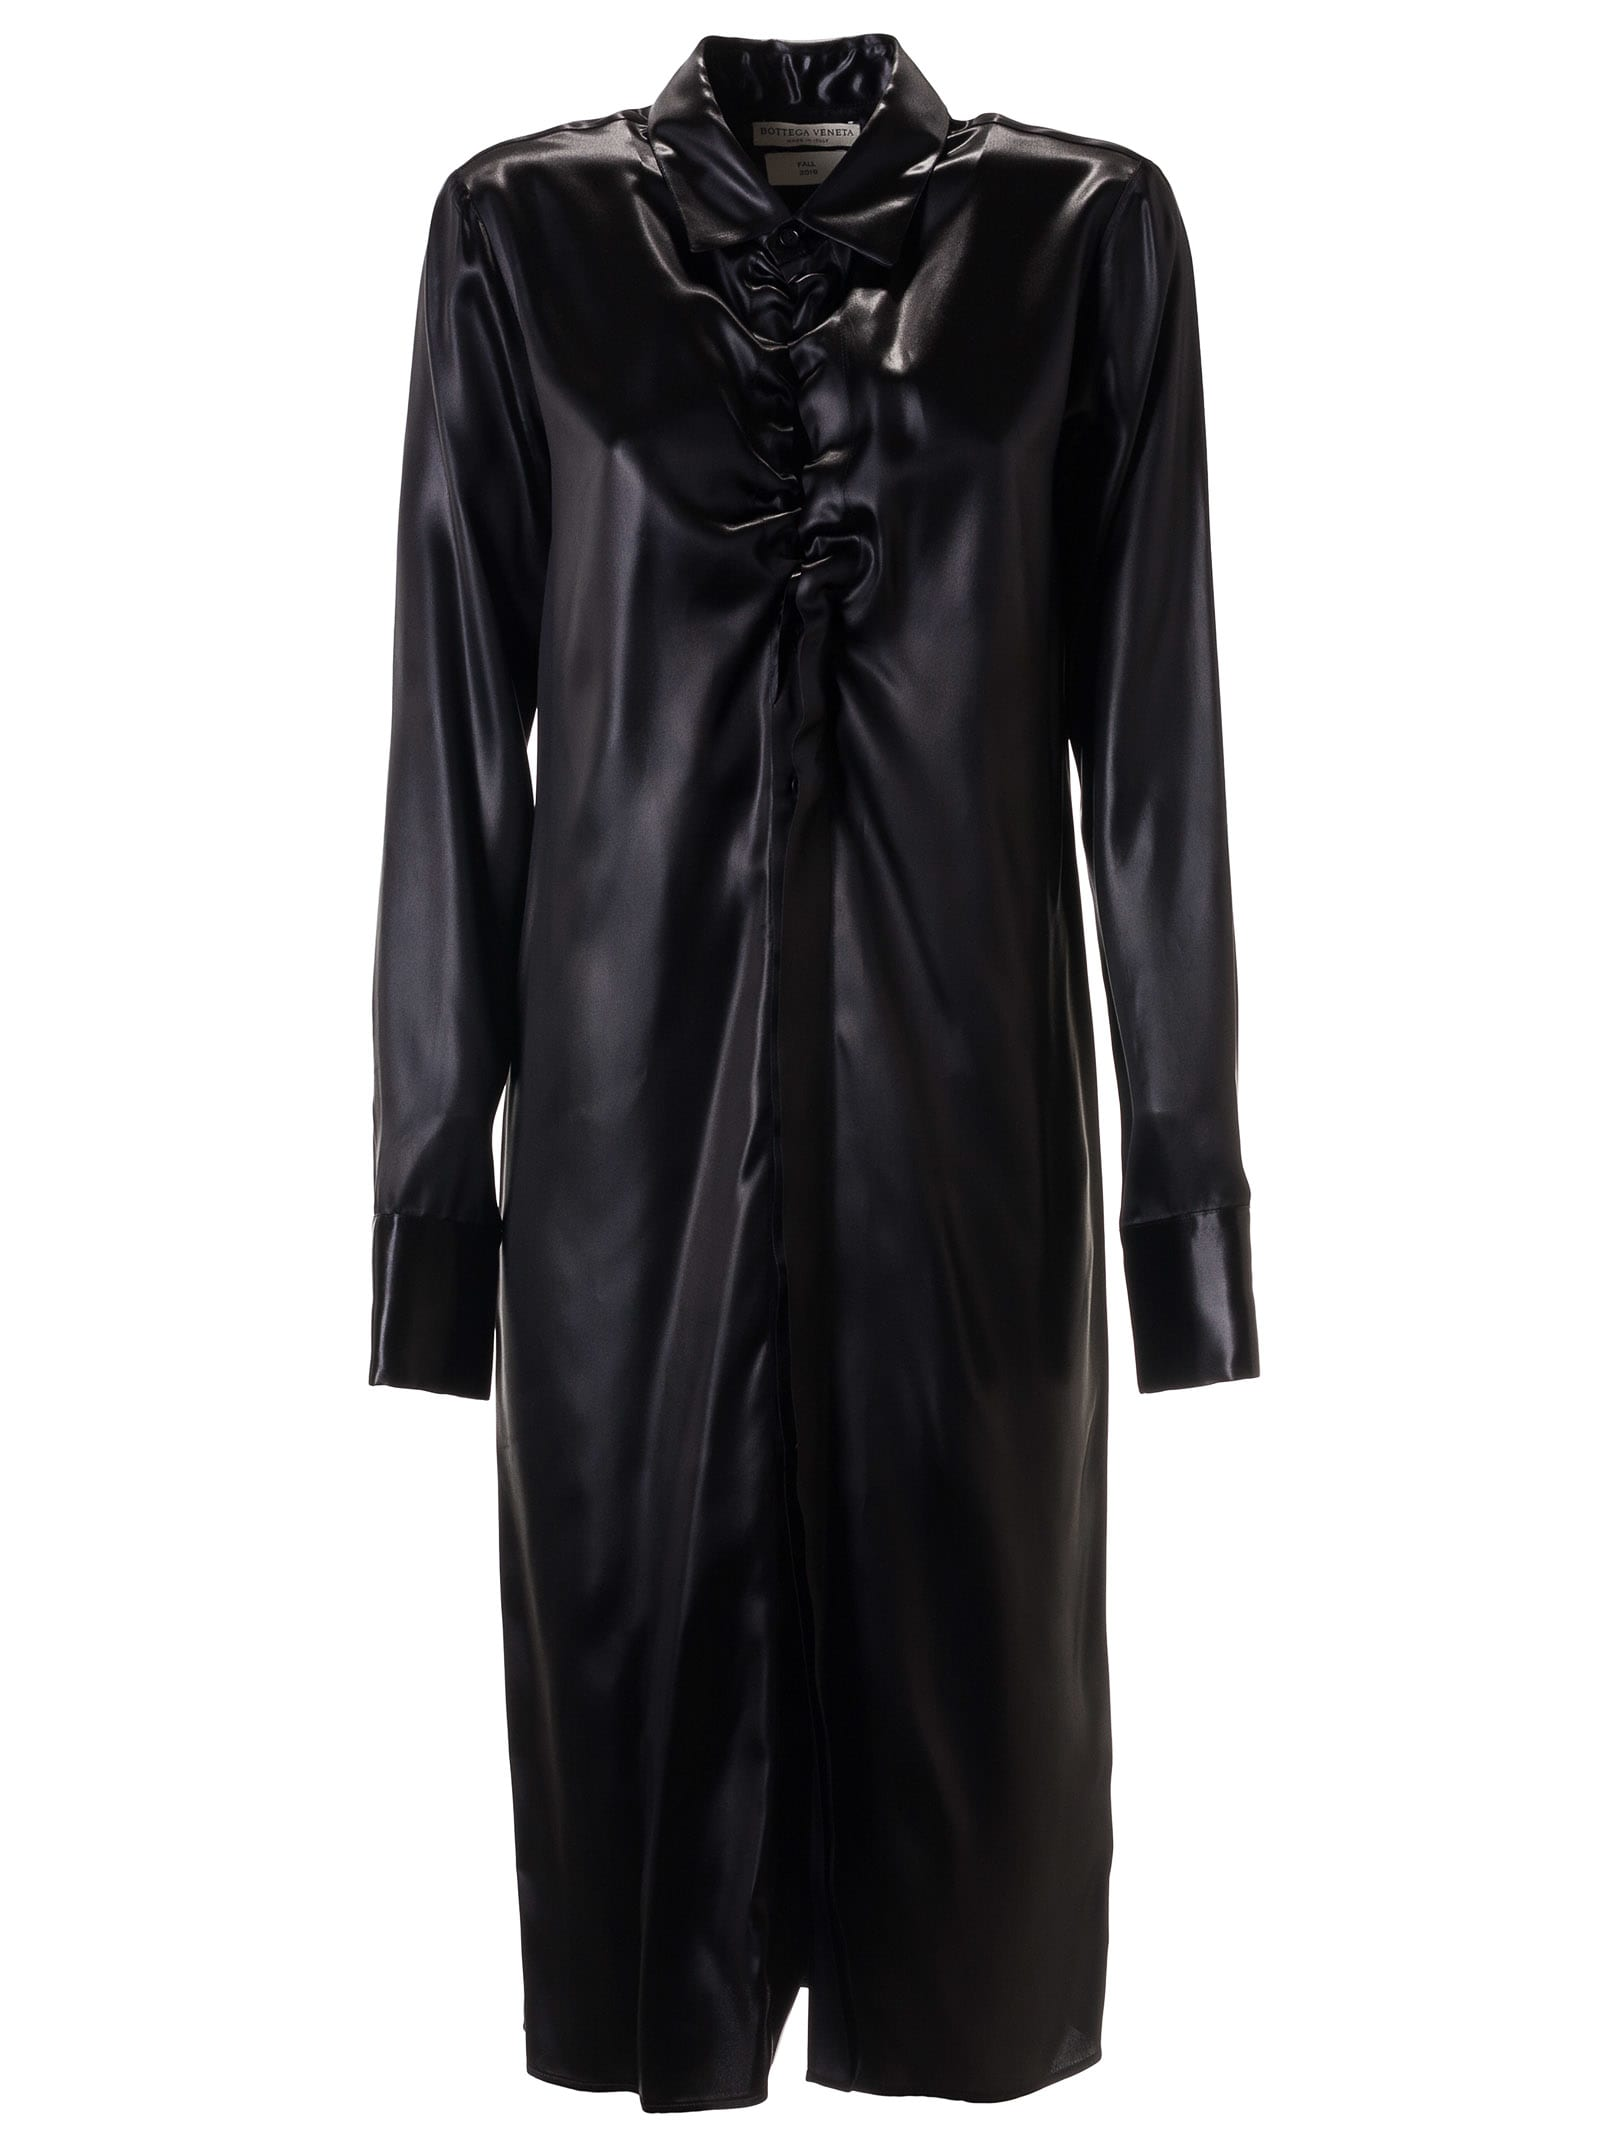 Bottega Veneta Lacquered Satin Dress